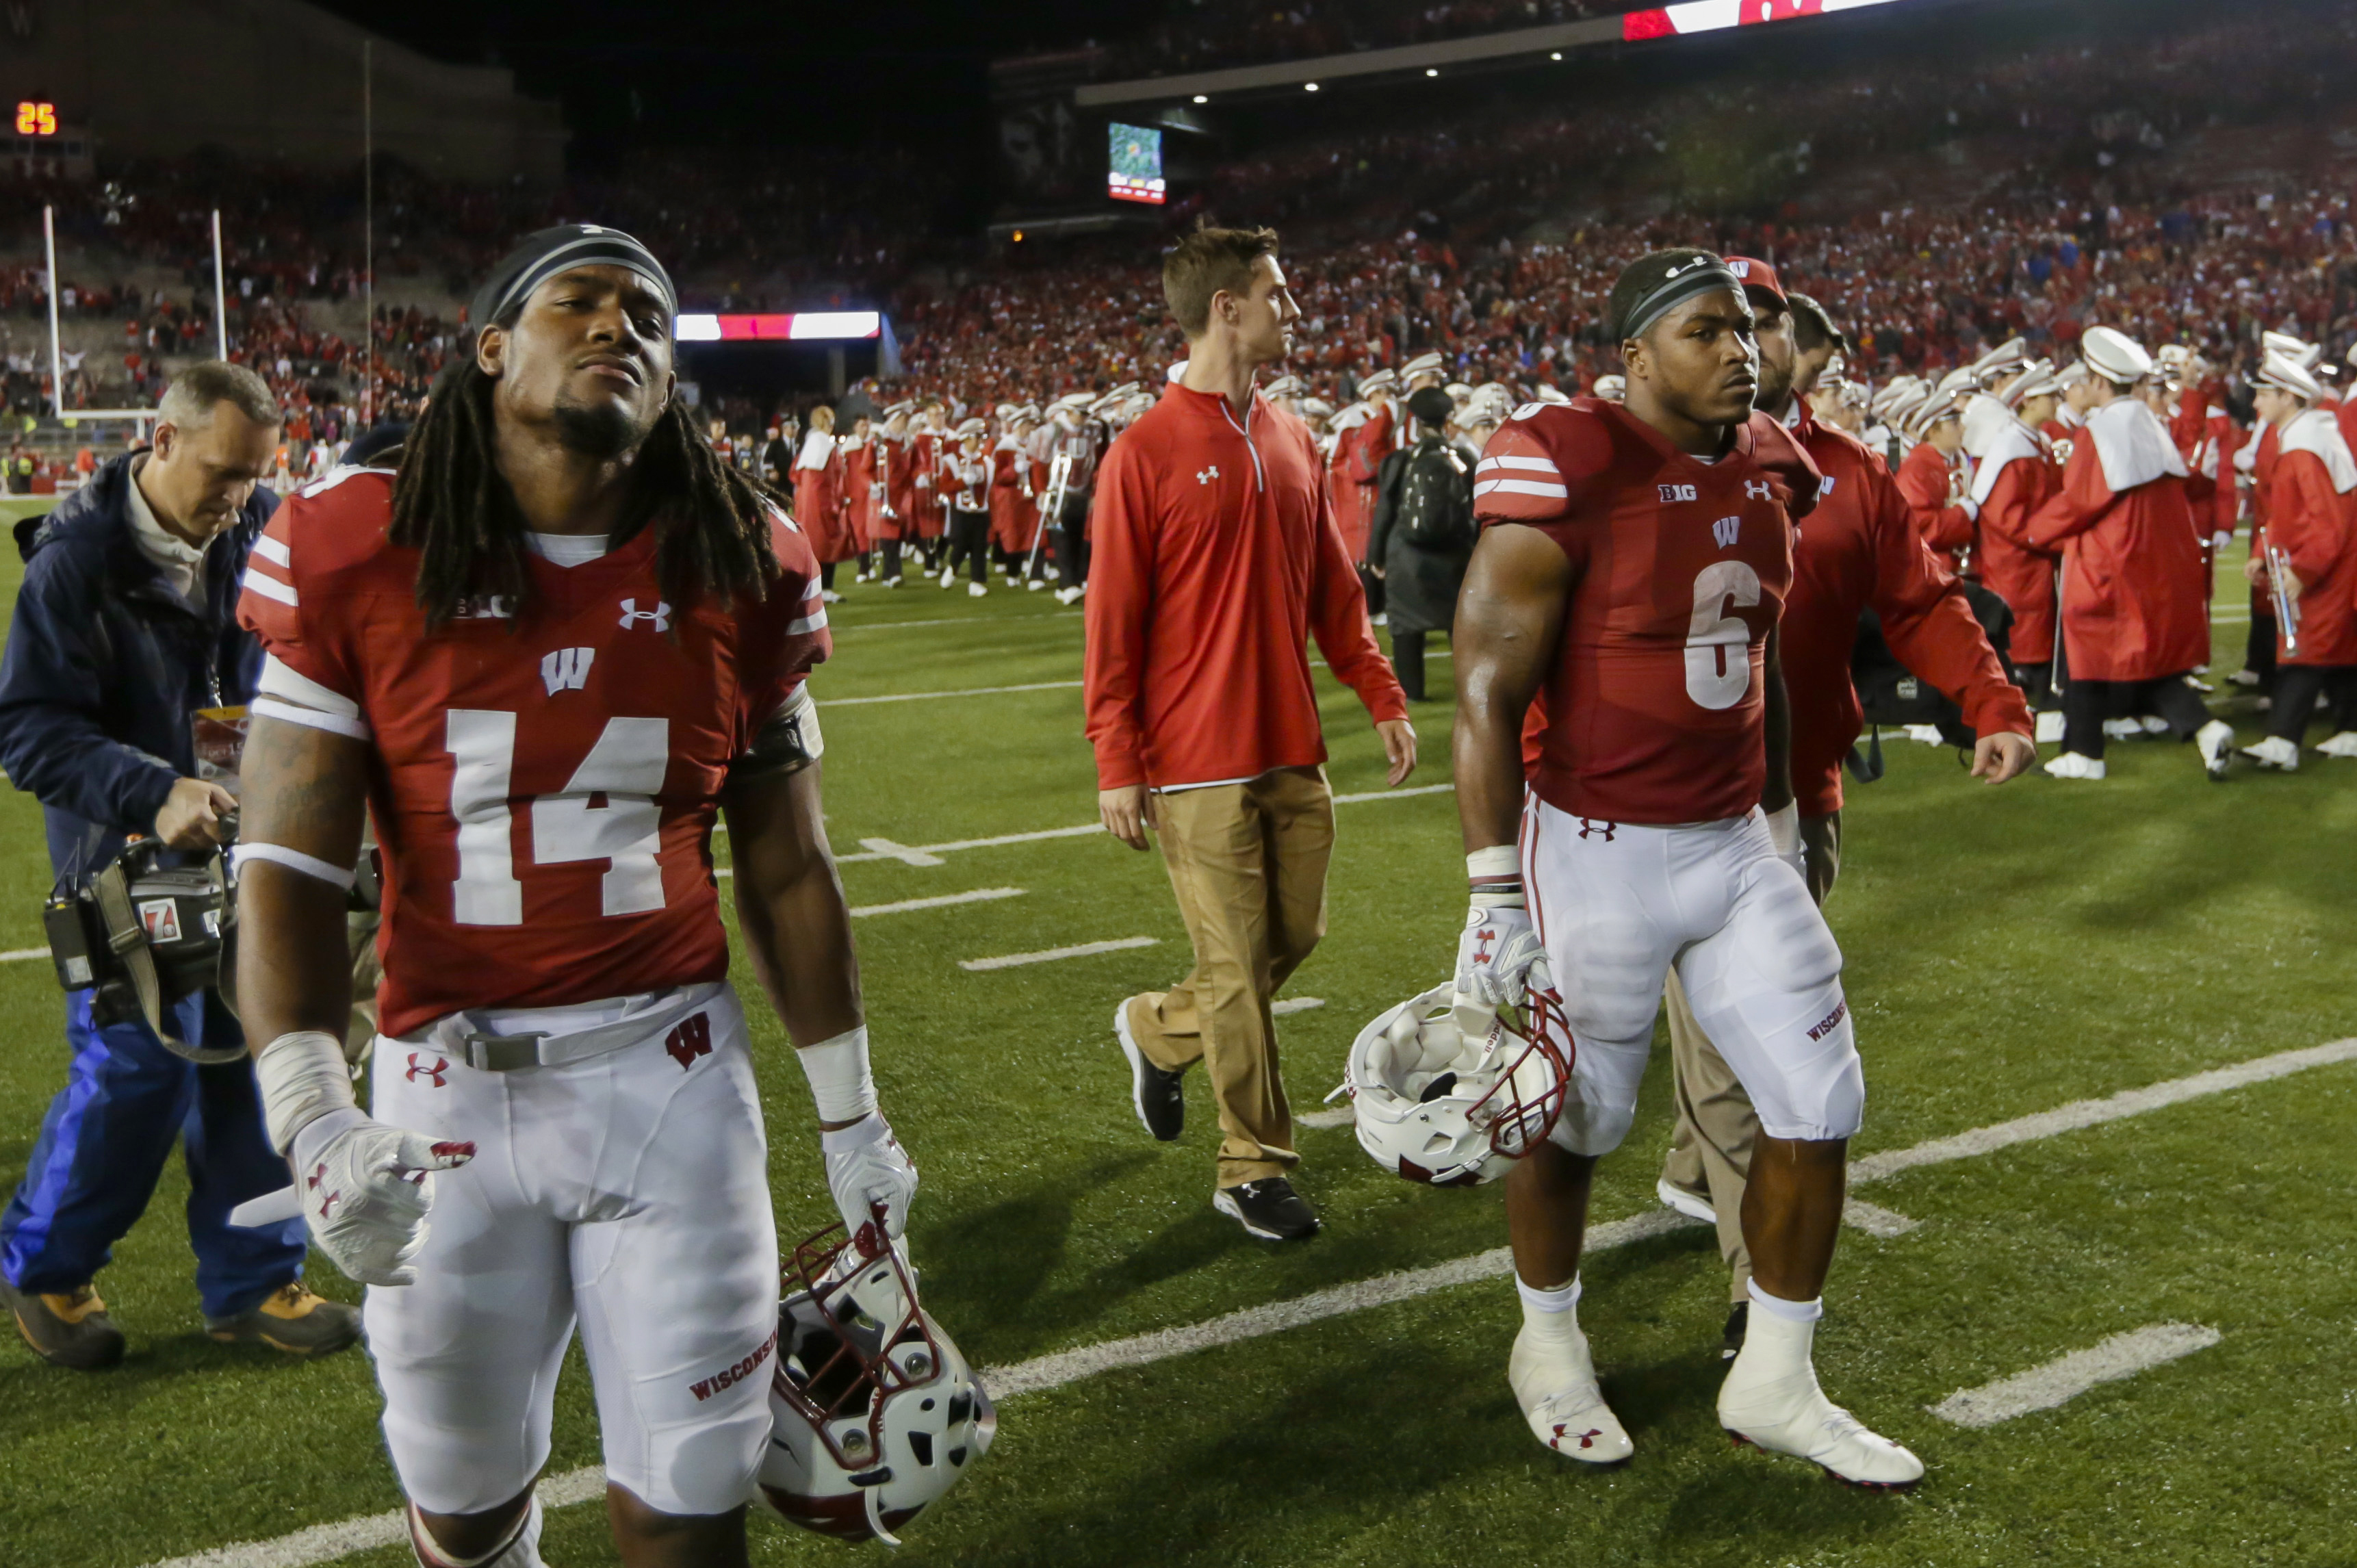 Wisconsin's D'Cota Dixon (14) and Corey Clement (6) walk off the field after Wisconsin lost 30-23 to Ohio State in overtime of an NCAA college football game Saturday, Oct. 15, 2016, in Madison, Wis. Ohio State won 30-23. (AP Photo/Andy Manis)